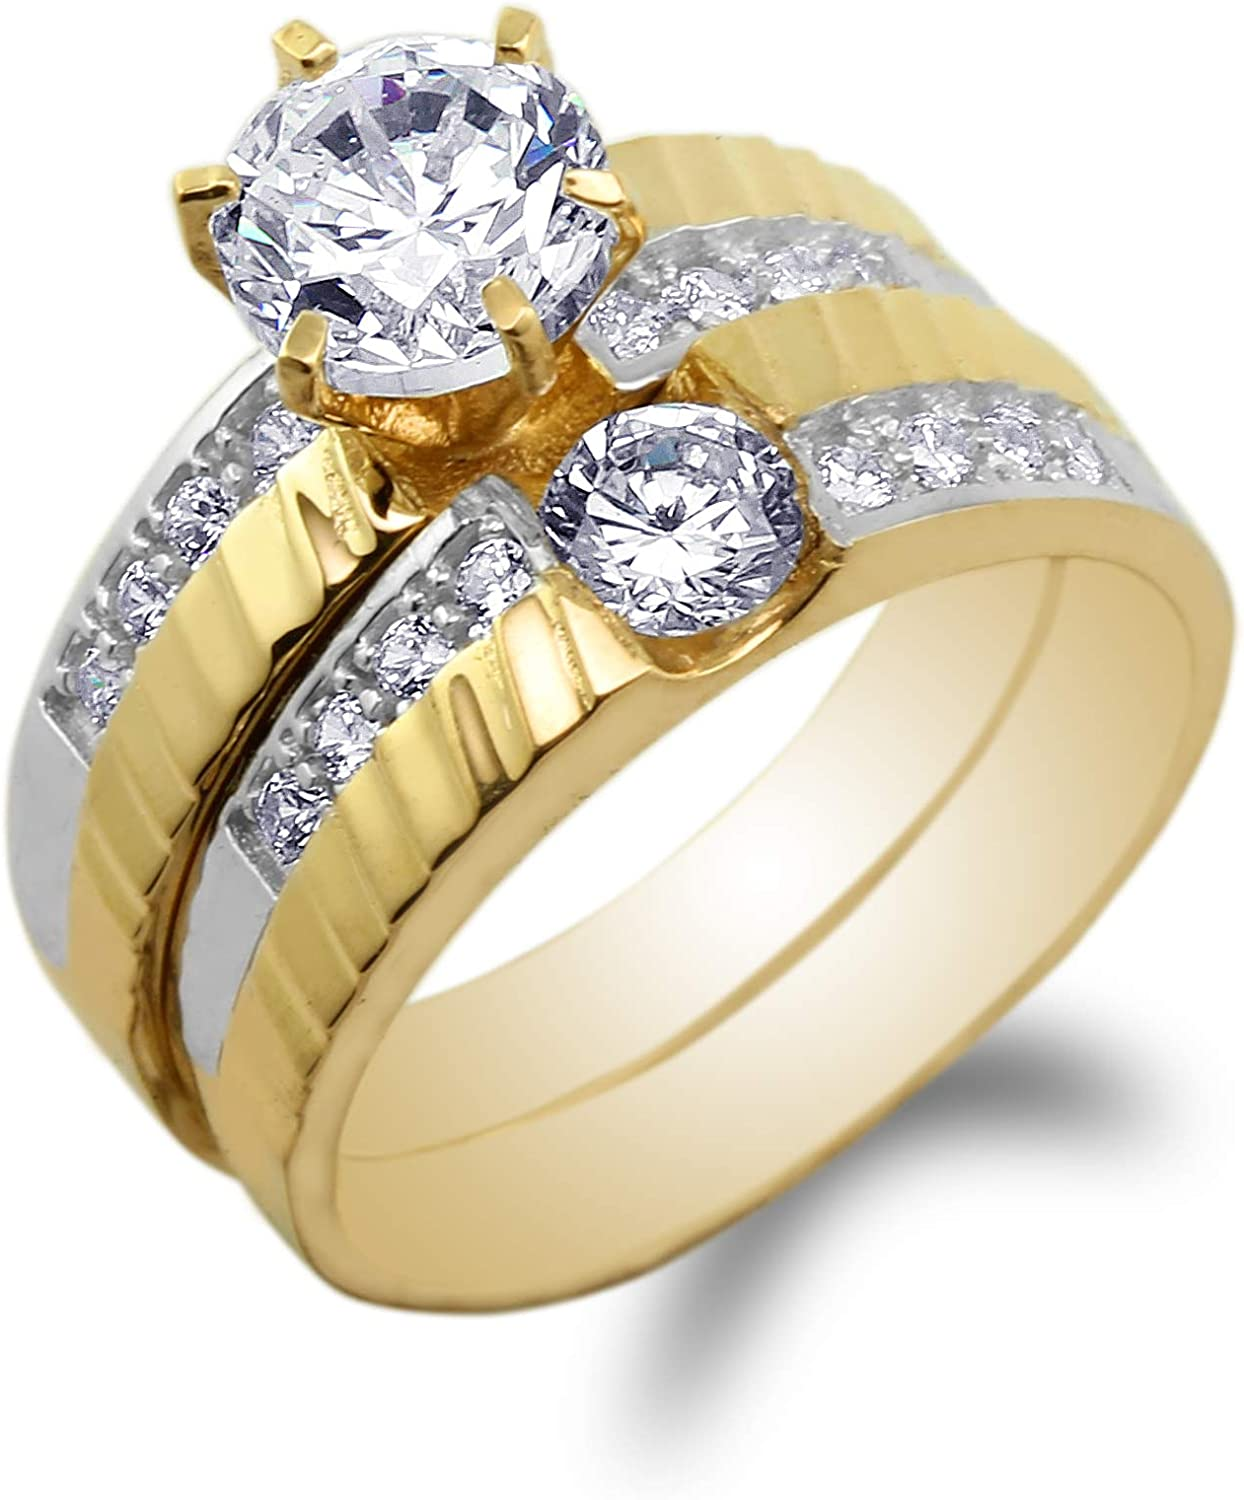 JamesJenny Ladies 10K Yellow Gold Round CZ Unique Fancy Band Ring Size 4-10